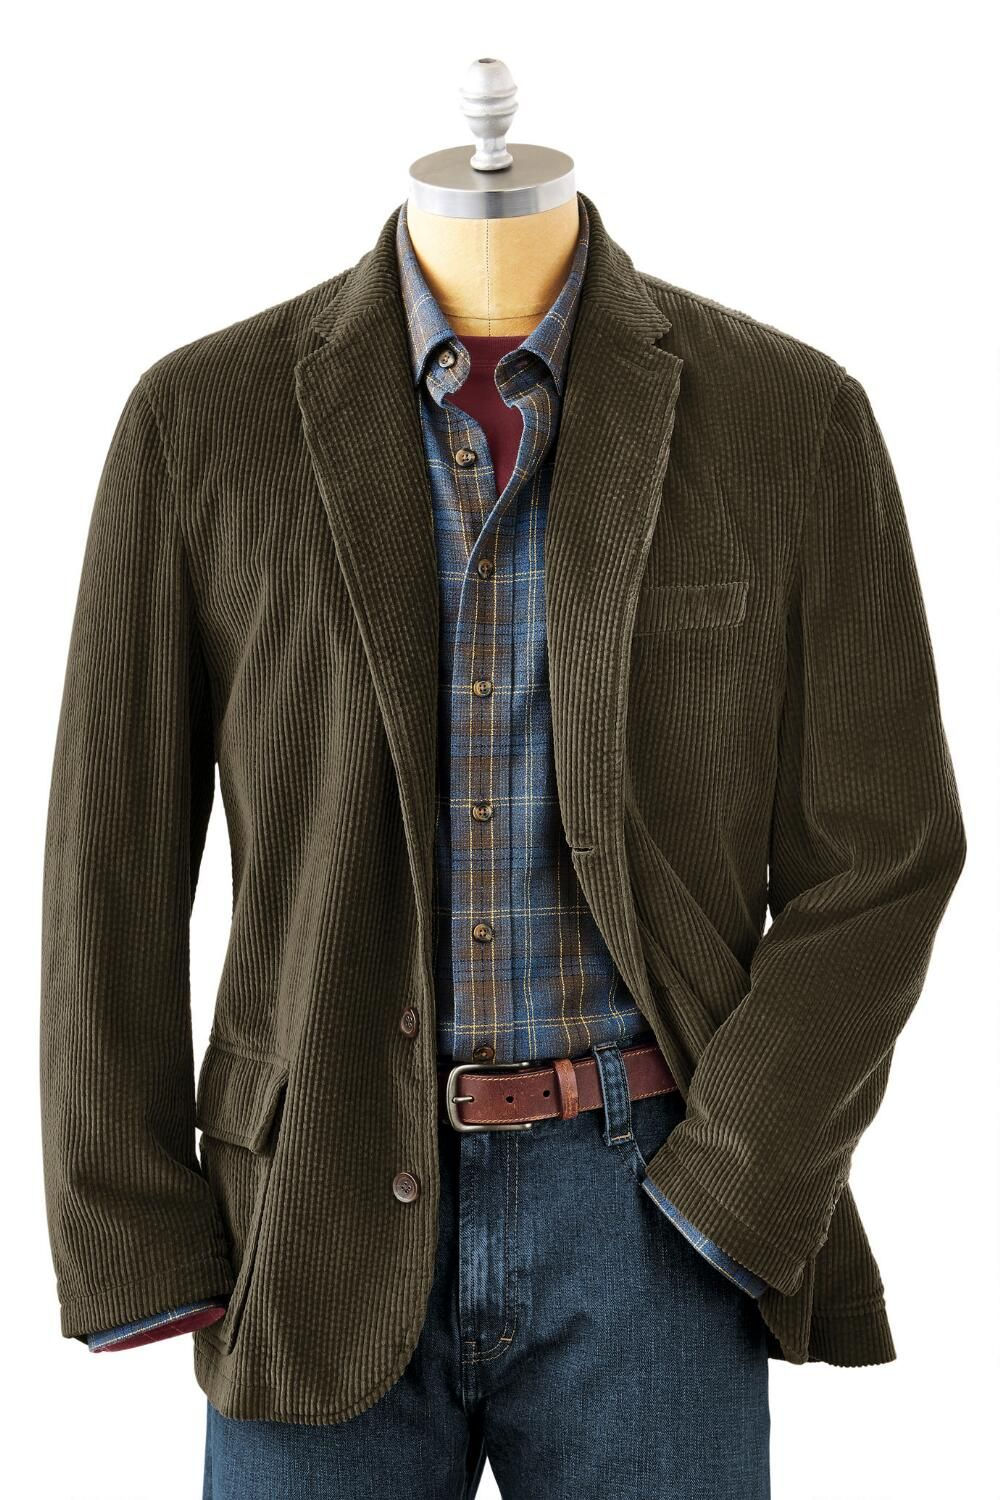 Manana Cord Sport Coat Territory Ahead Sports fashion